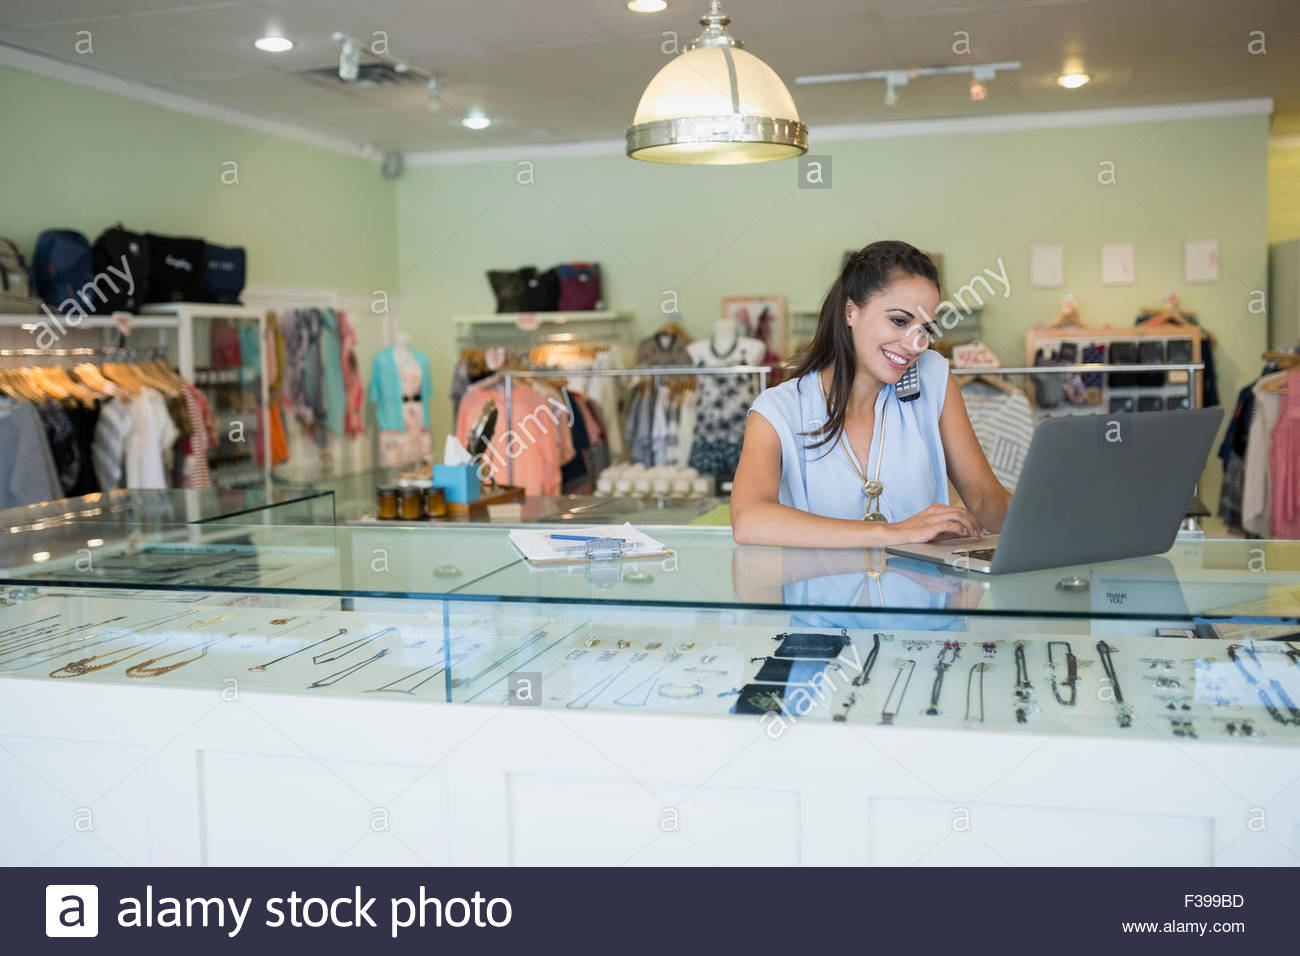 Worker using laptop at counter in shop - Stock Image